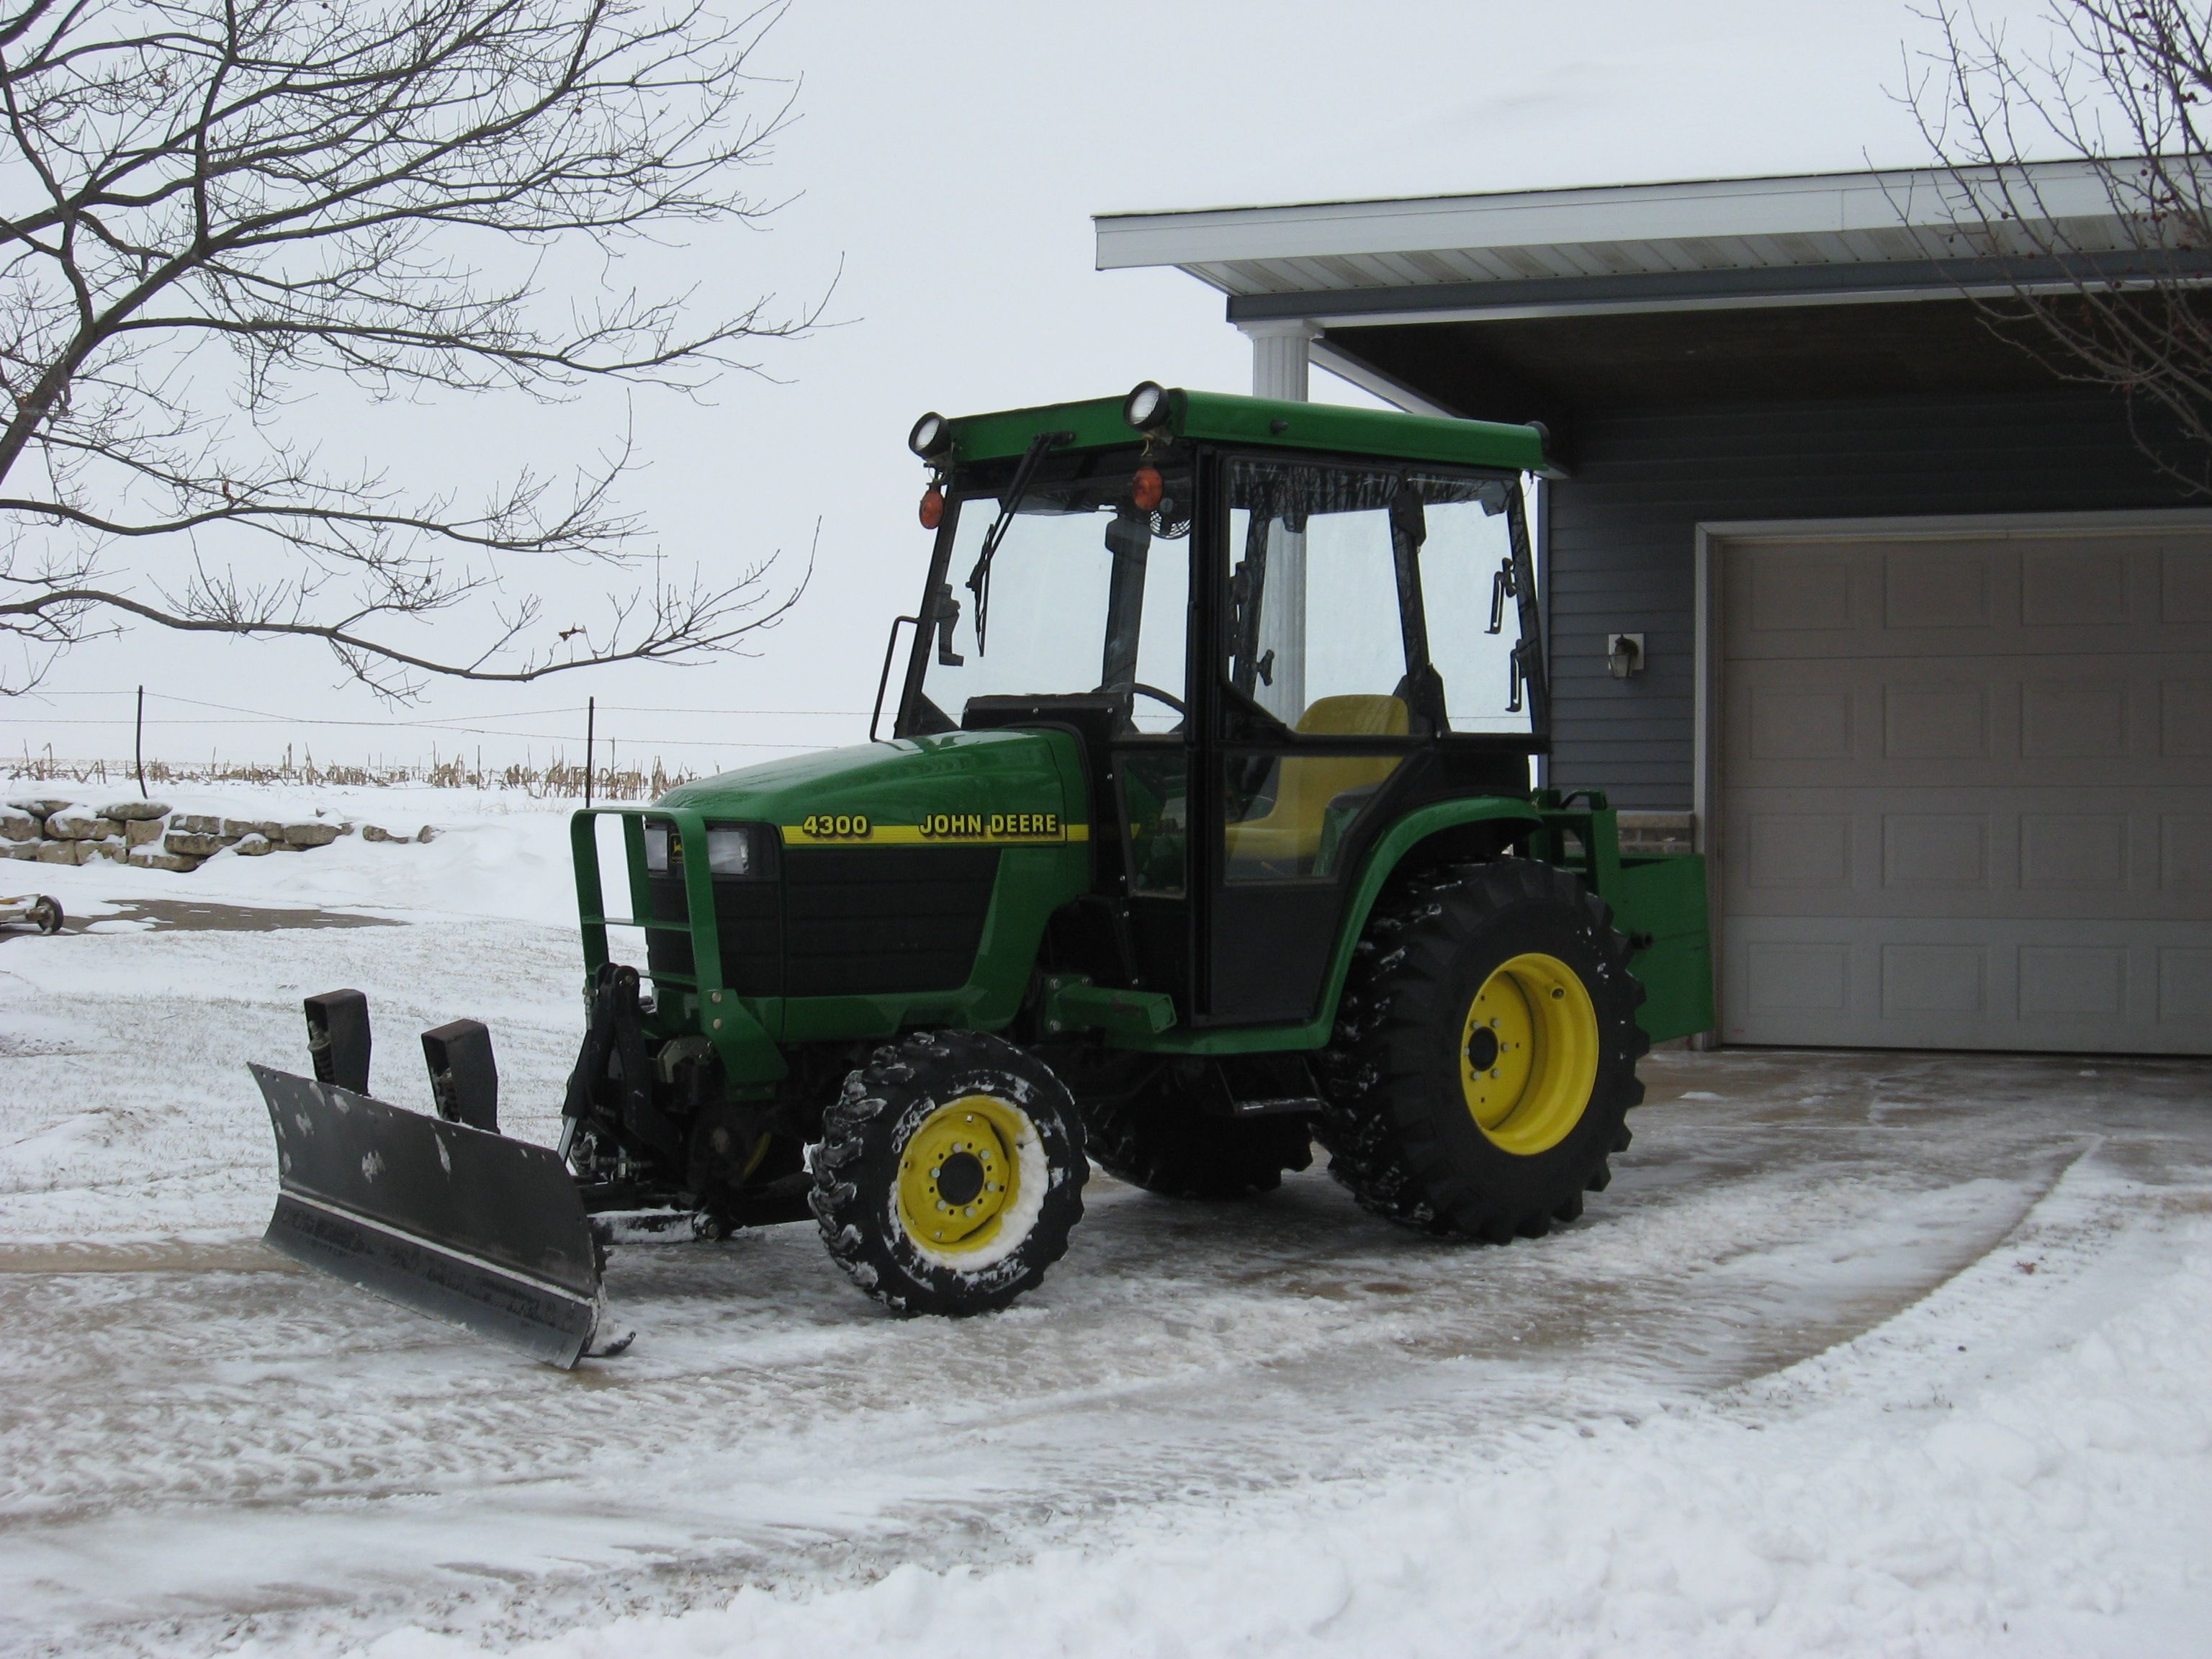 John Deere Snow Plow John Deere 4300 This Is Truly One Amazing Snowplow And The